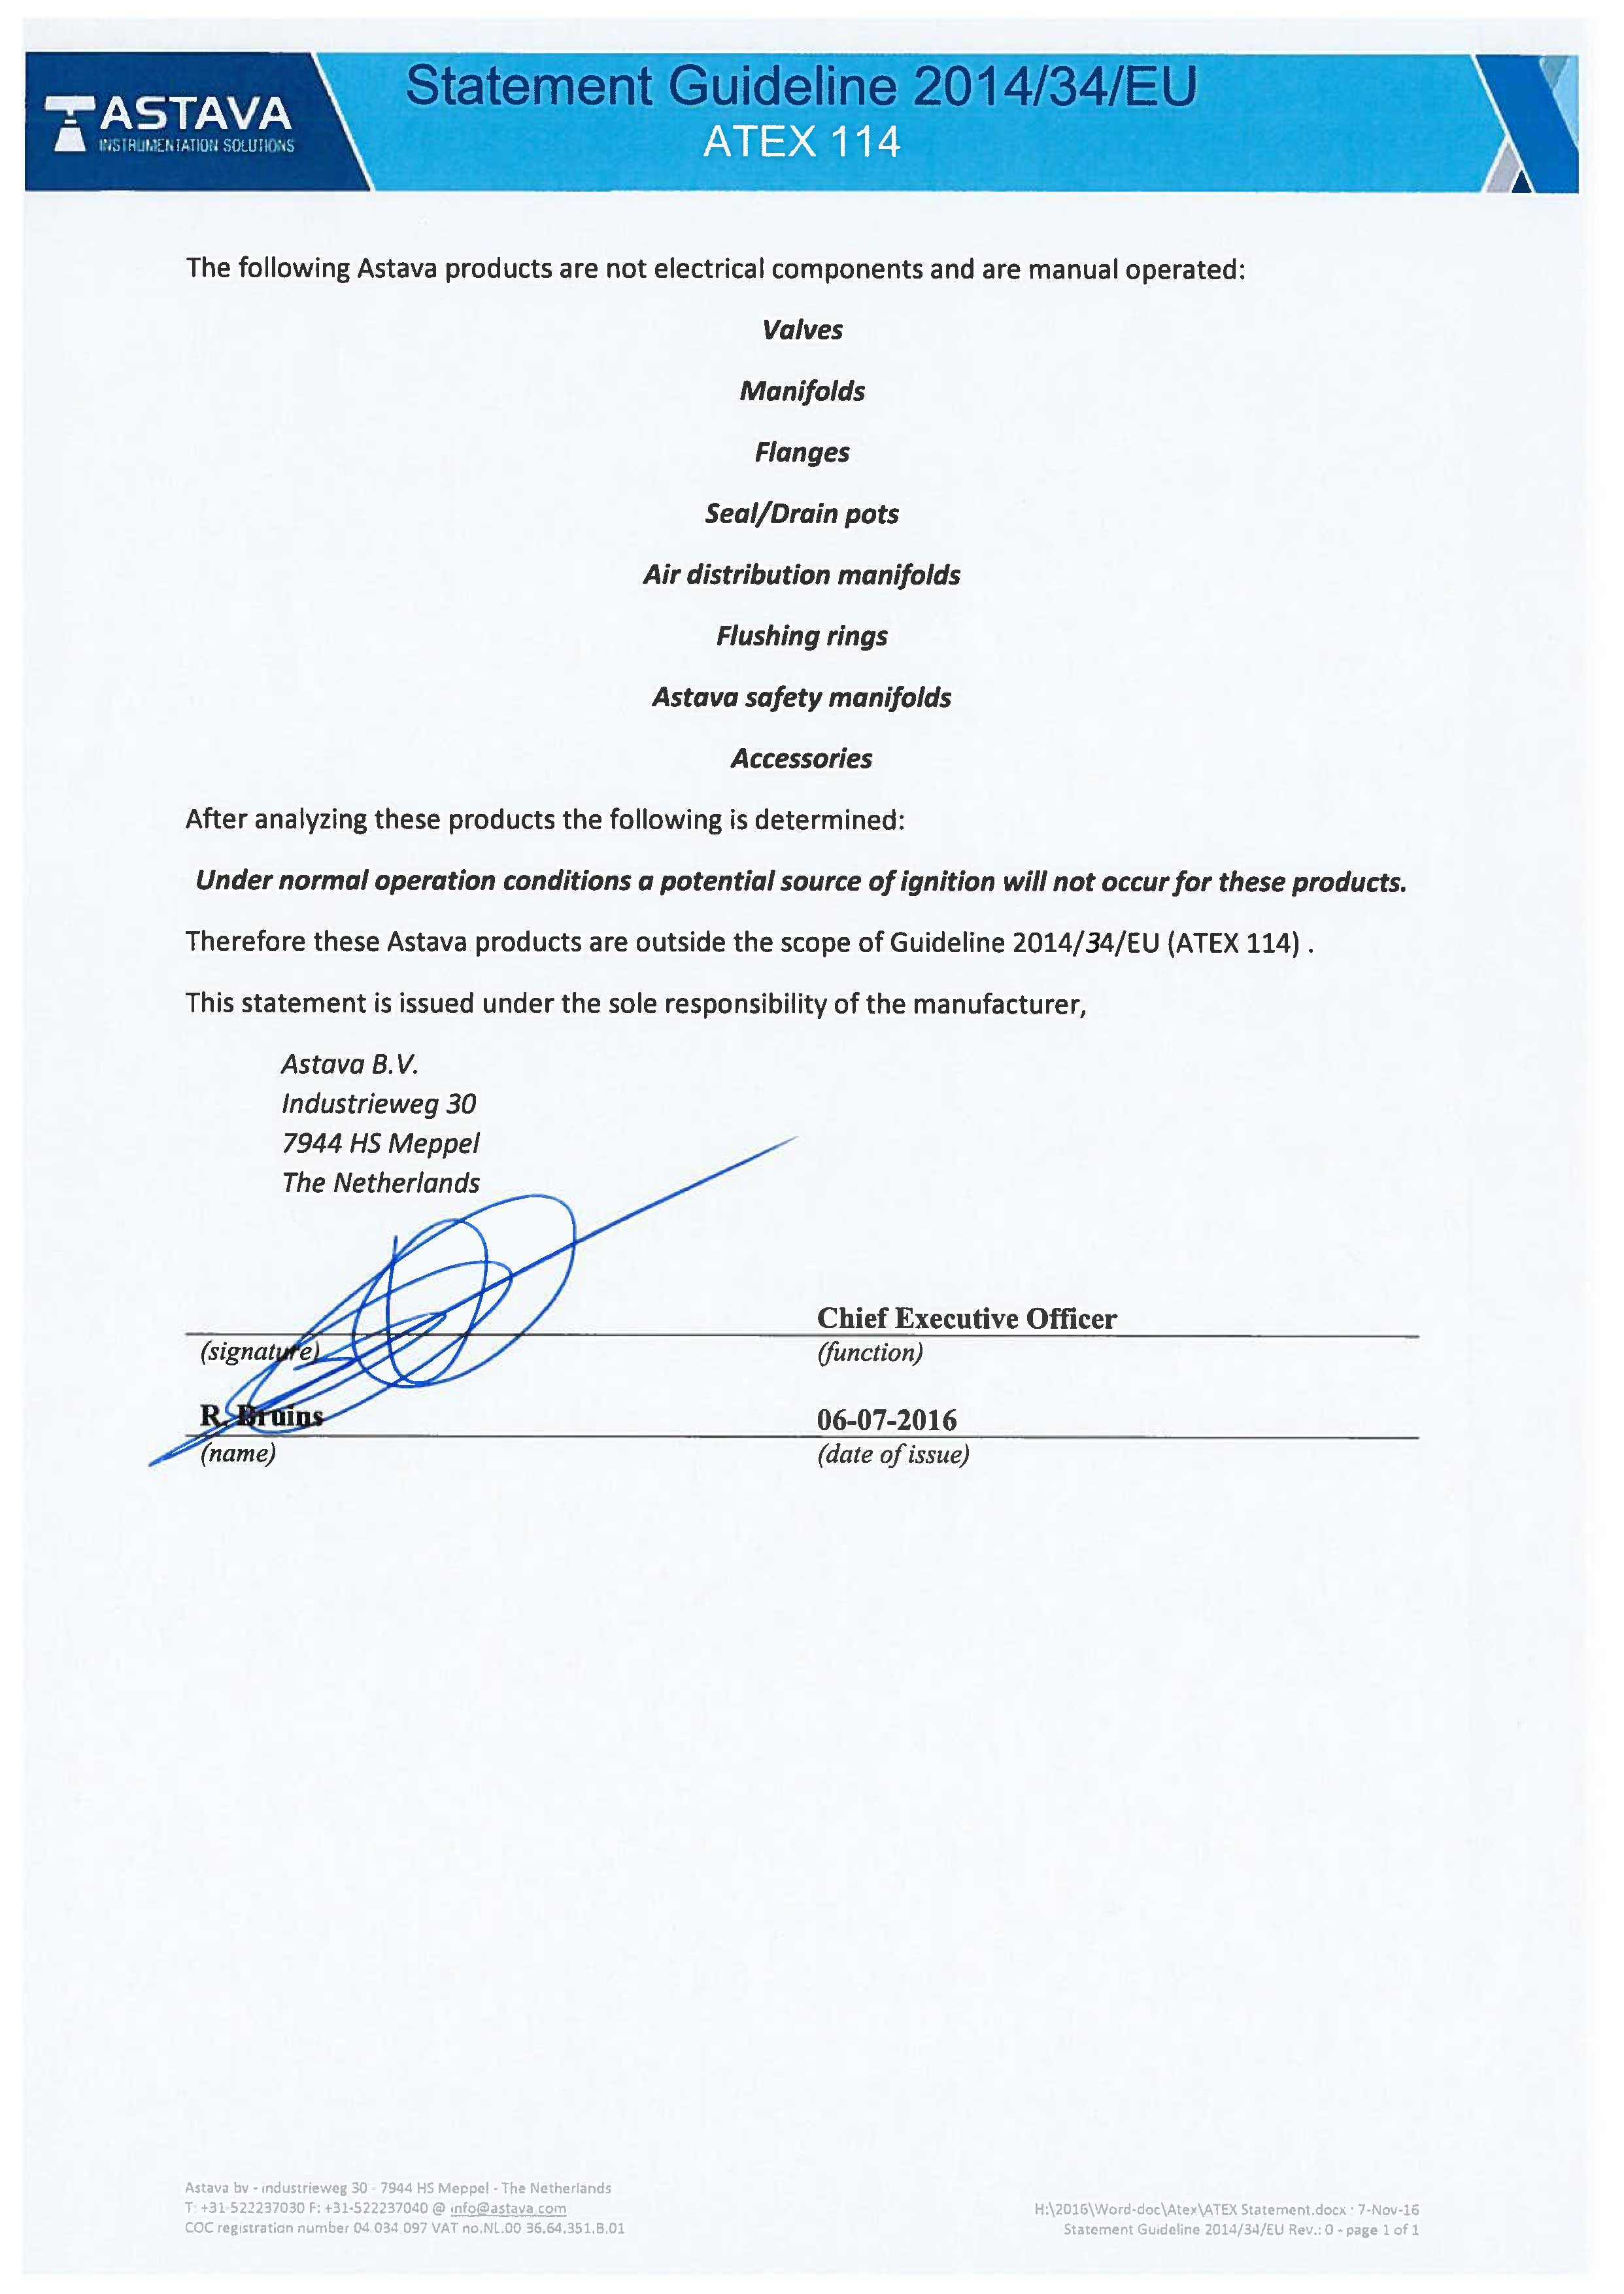 declaration-of-conformity-general-statement-on-atex-2014-34-eu